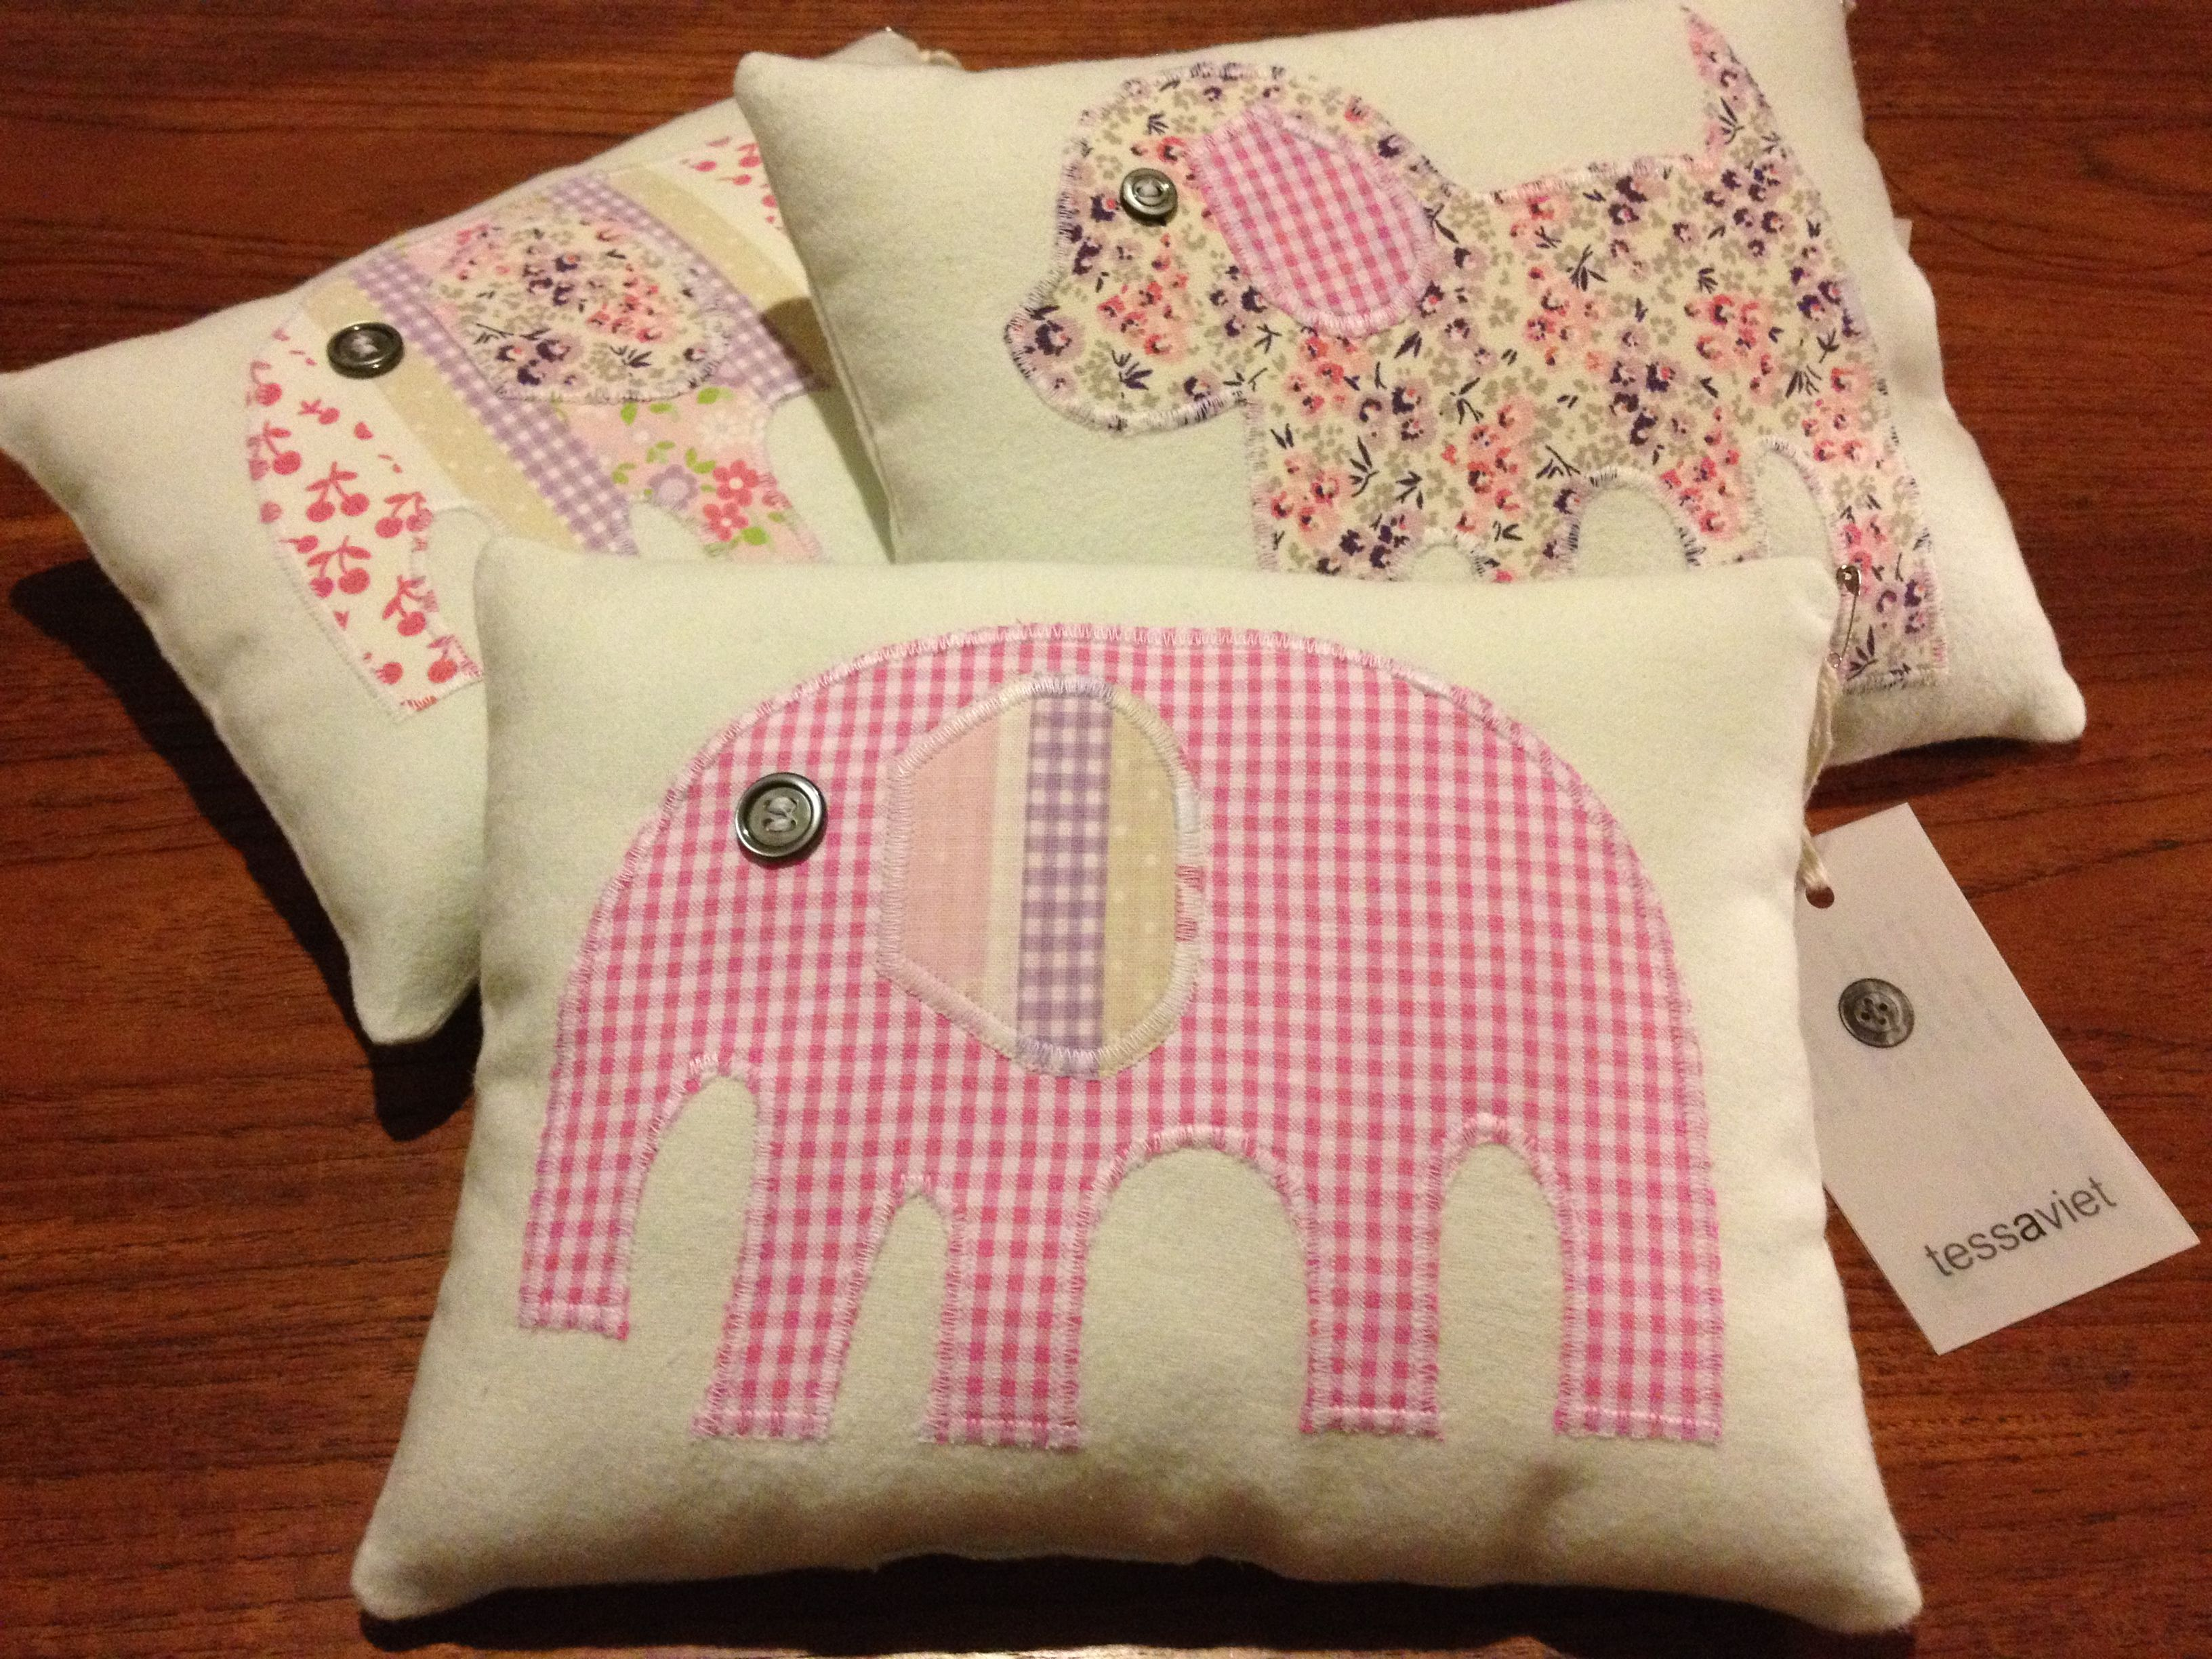 Today's wee cushion makes (front)